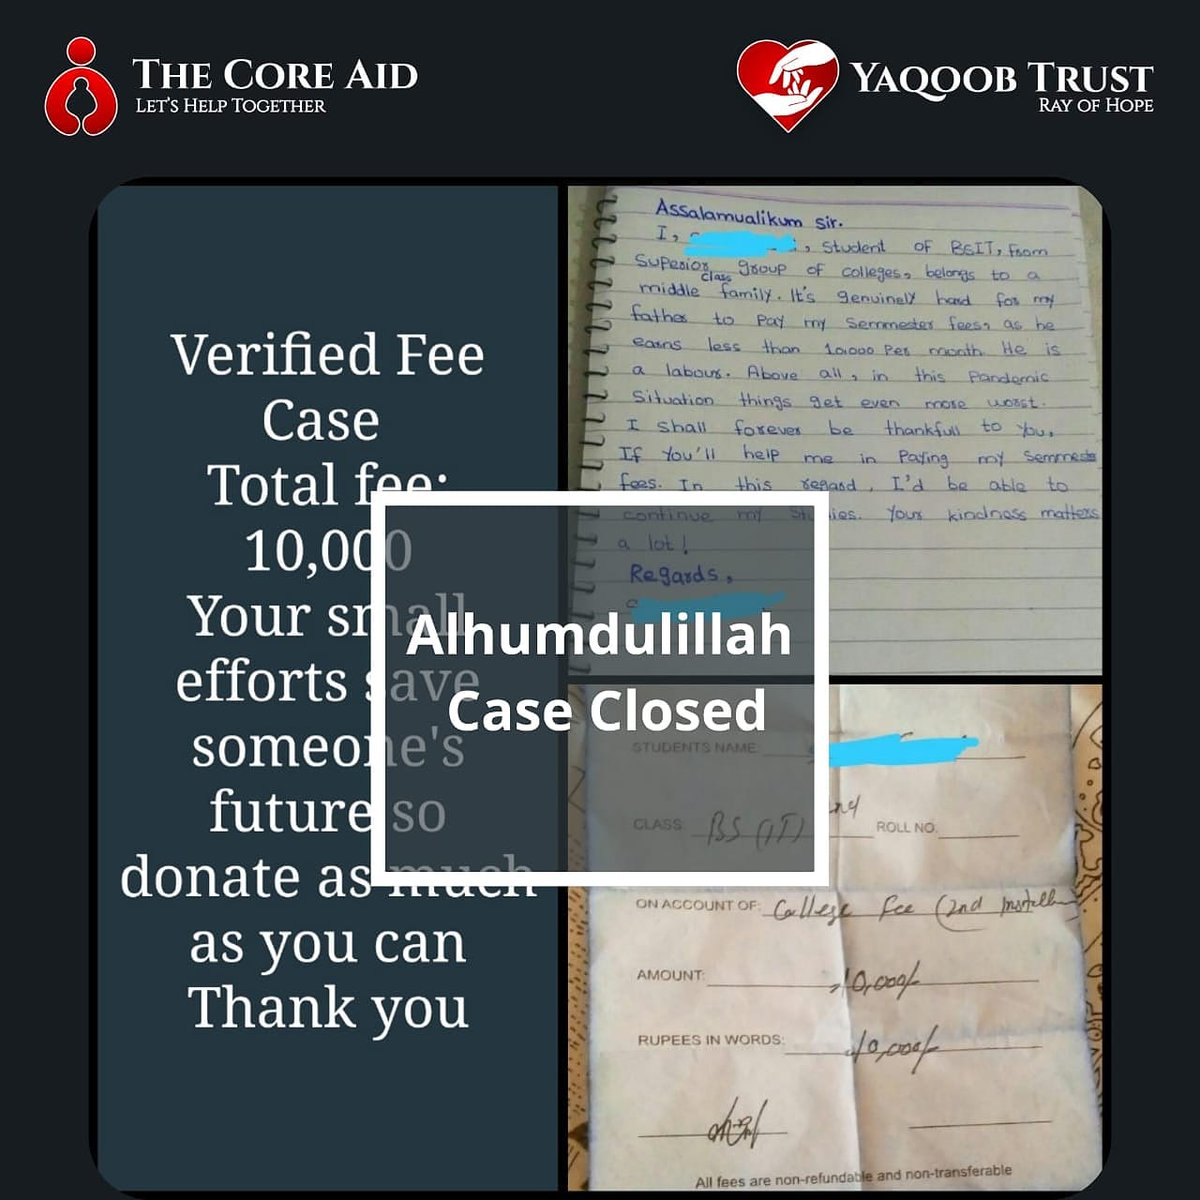 Alhumdulillah, successfully solved the case with the help of our precious donors and other prestigious organizations.♥️  Looking forward towards many more and also the help of you people ✨🇵🇰  #TheCoreAid #YaqoobTrust #TCA_YT #Needyourhelp #help #helppoor #donate #share